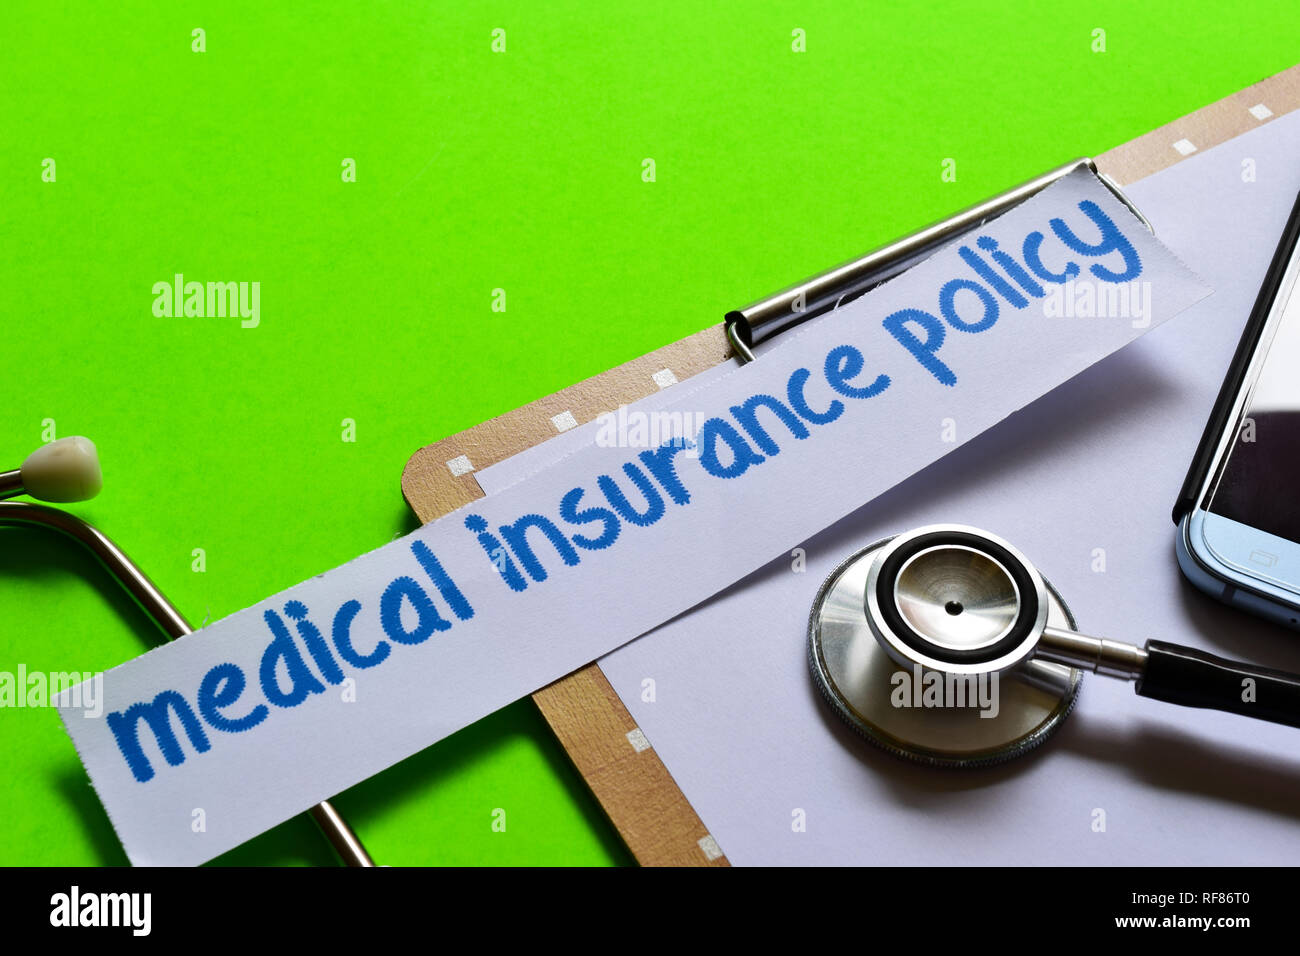 Medical insurance policy on healthcare concept inspiration with green background - Stock Image